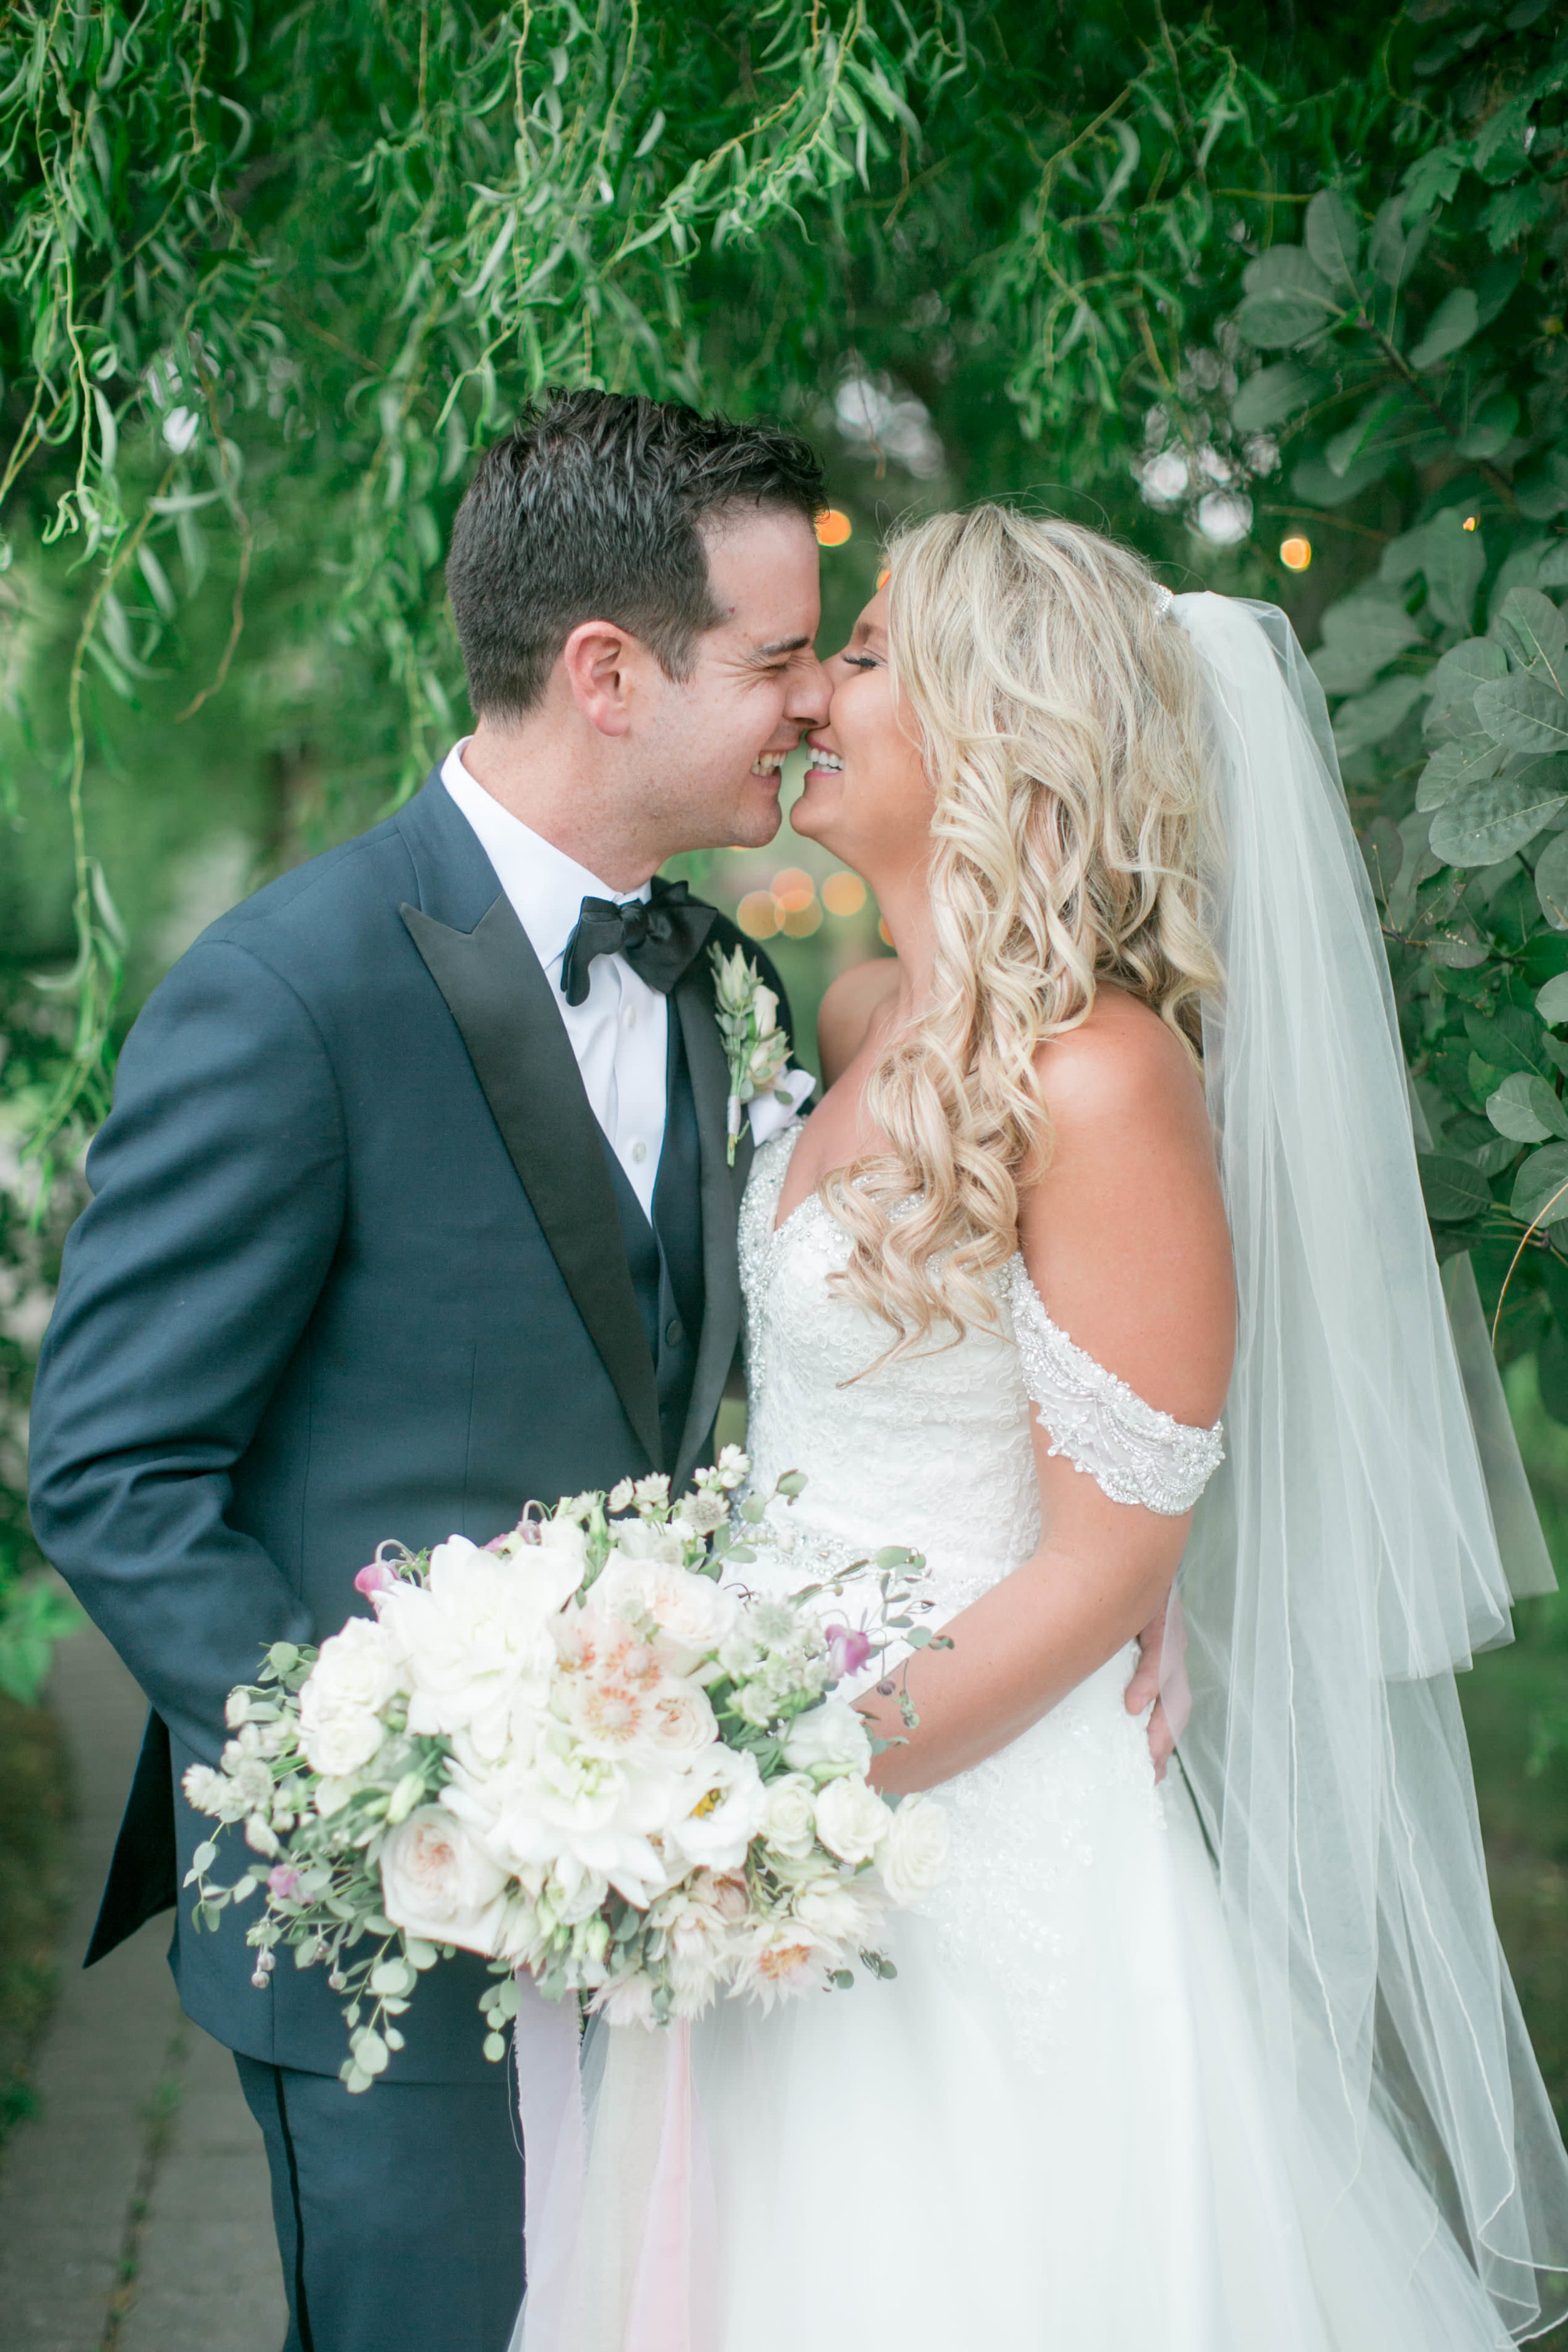 Ashley___Zac___Daniel_Ricci_Weddings___High_Res._Finals_398.jpg